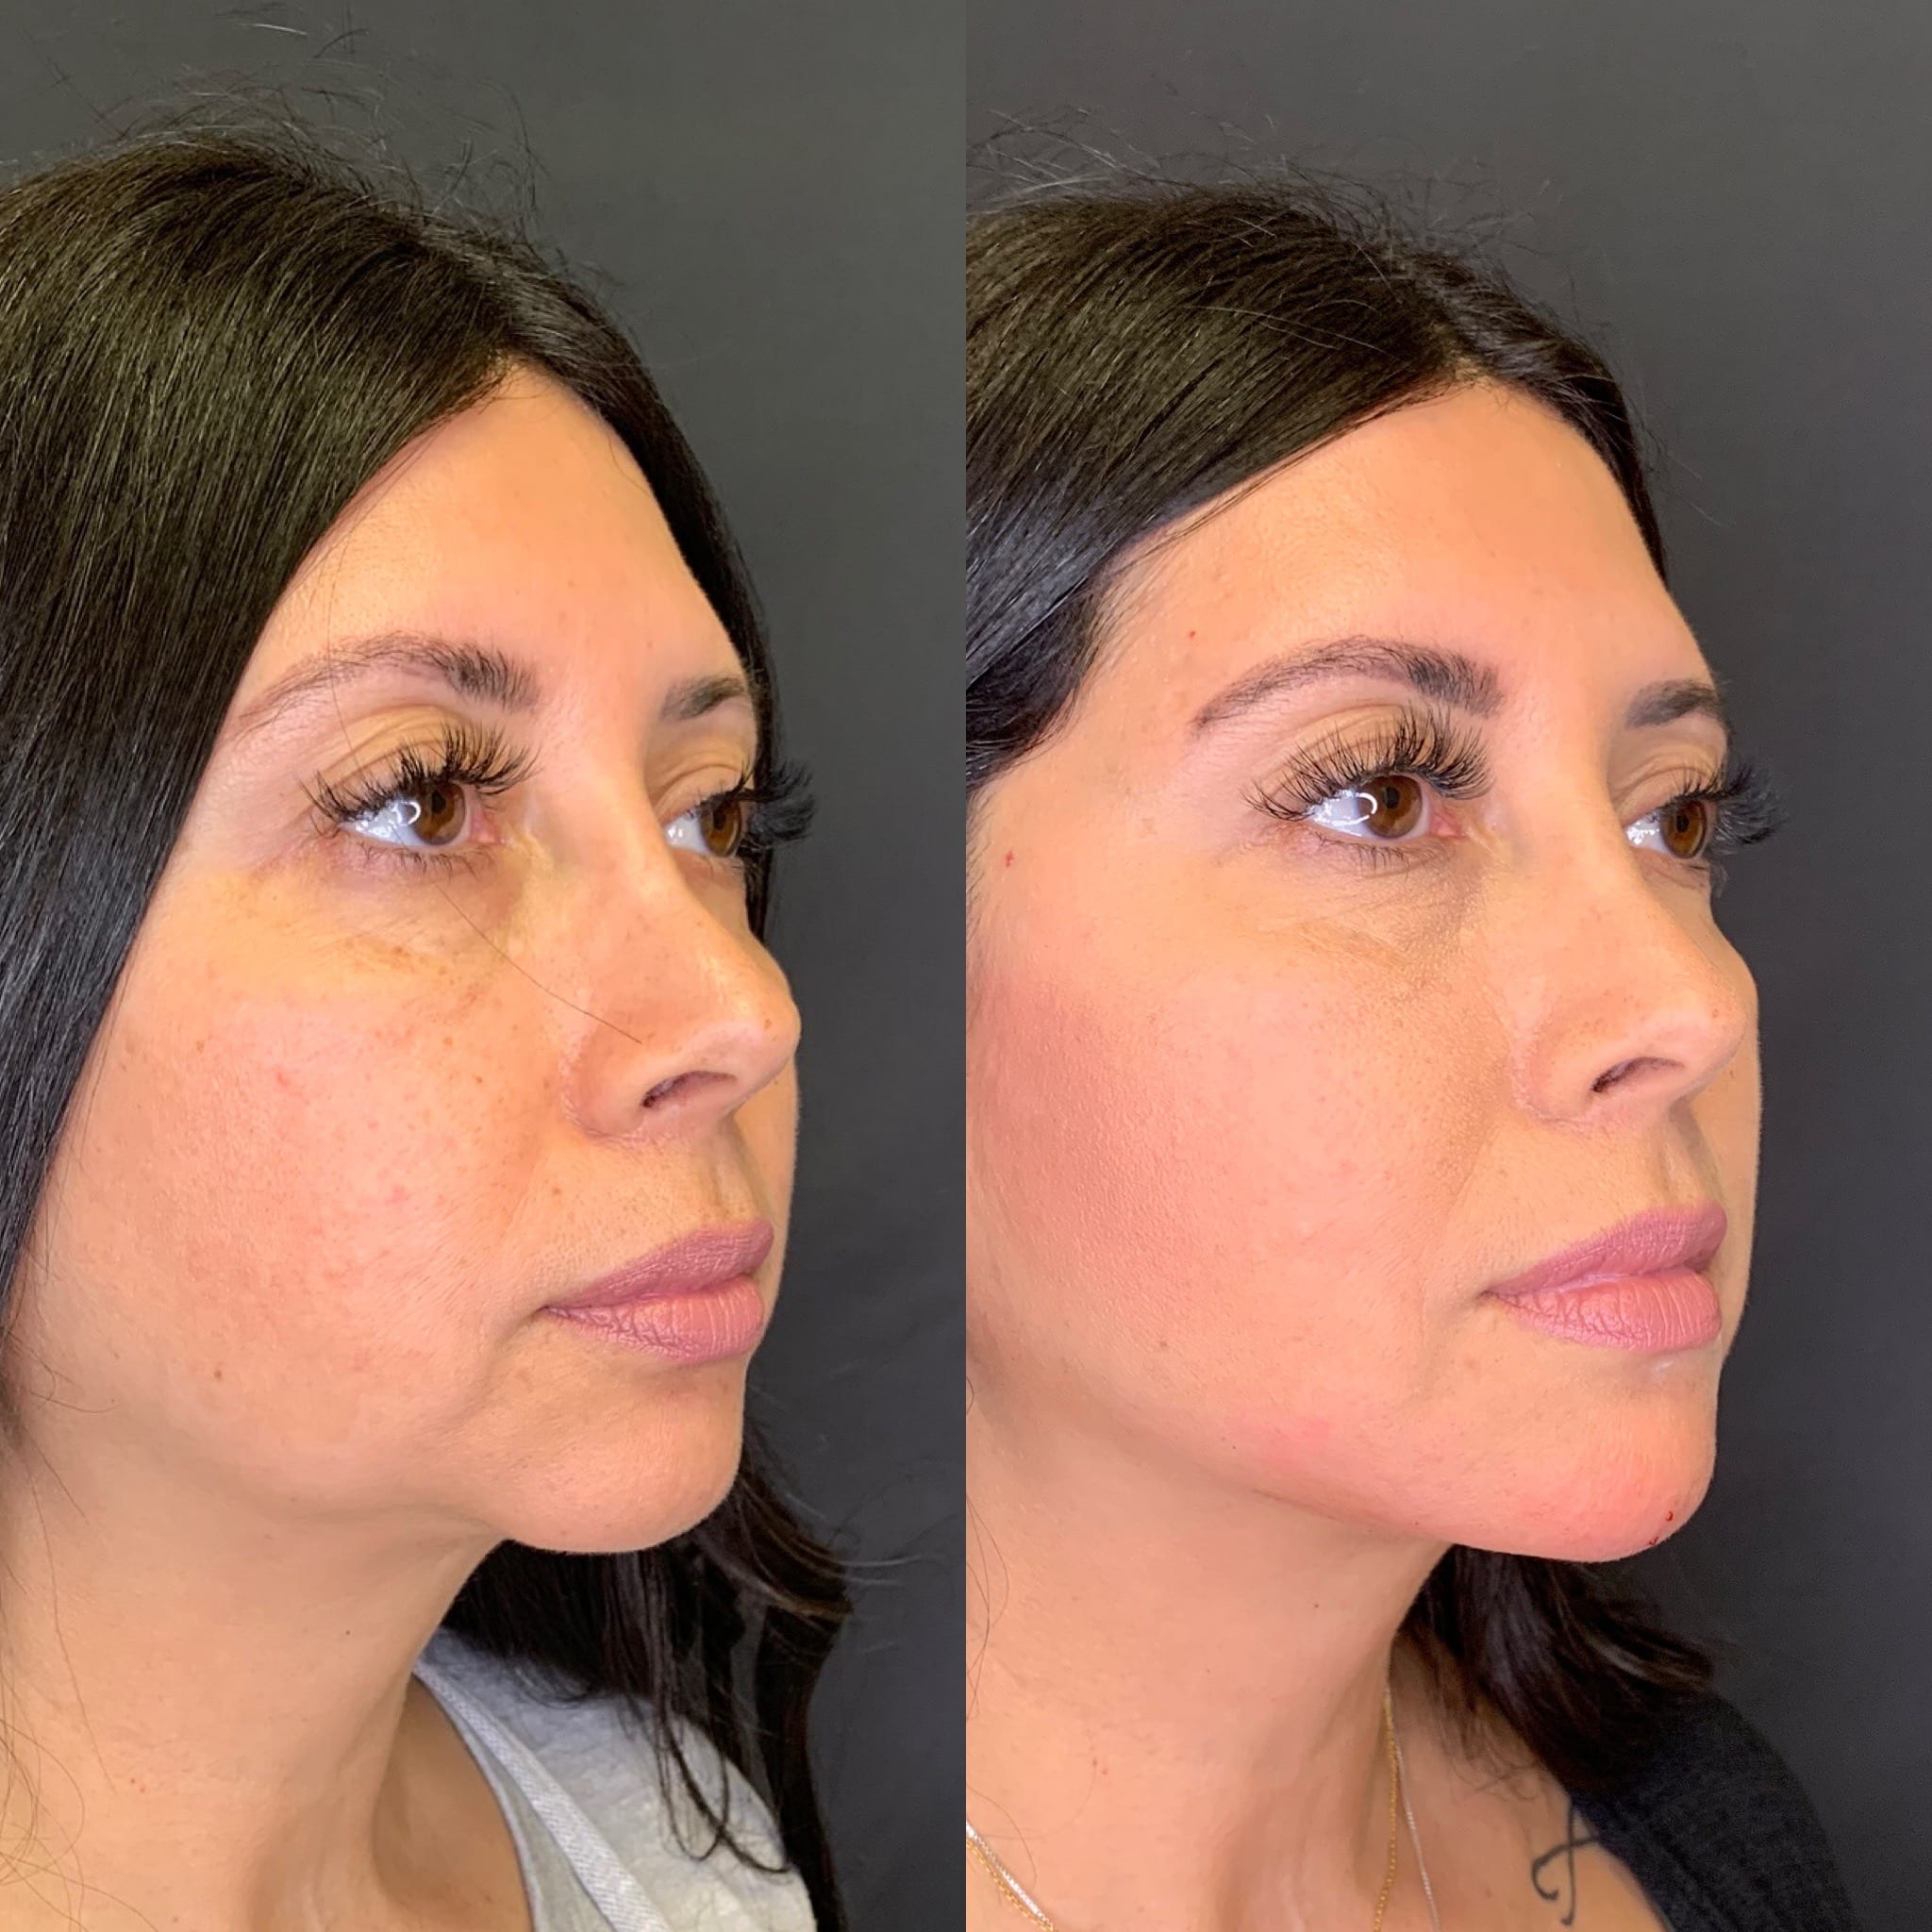 43 y/o Hispanic F immediately after injecting 3 syringes of voluma to her chin and jawline for better contour & definition.